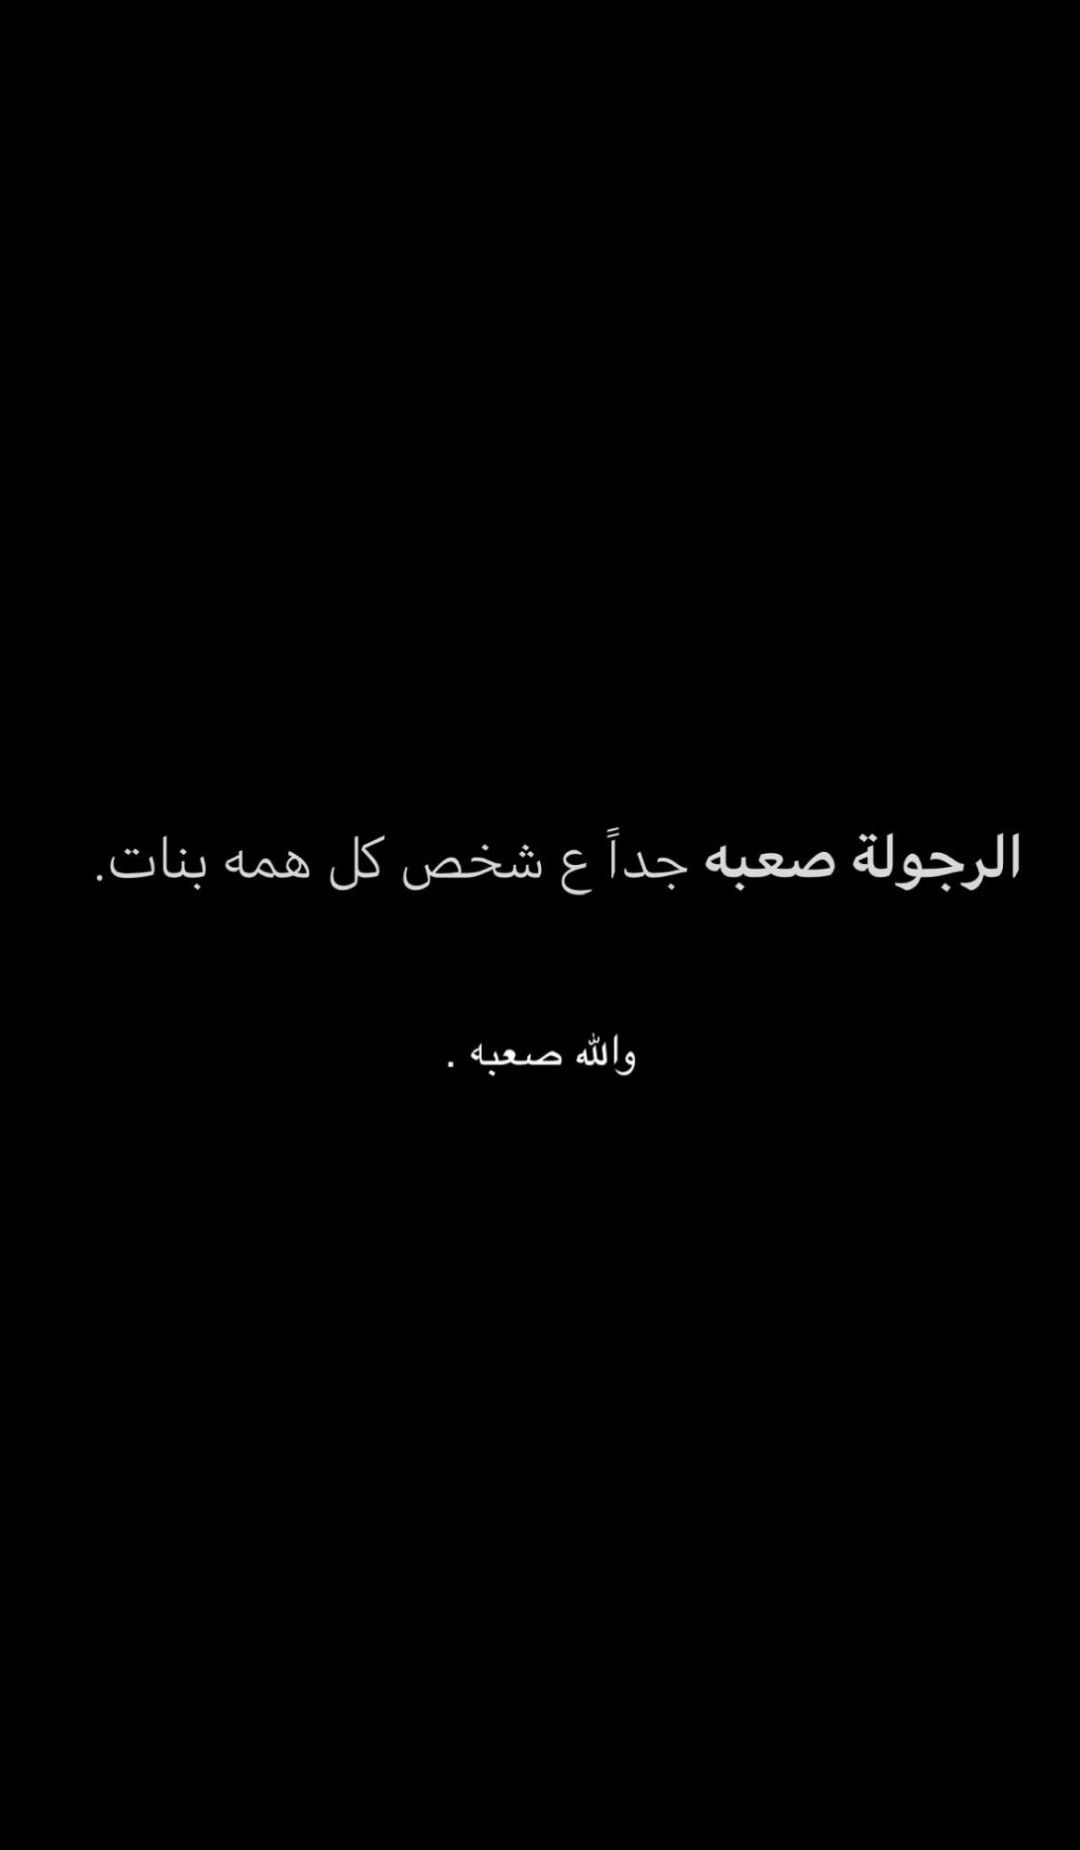 Pin By ليان ليان On حح كي In 2021 Love Quotes Photos Quotes For Book Lovers Love Quotes With Images